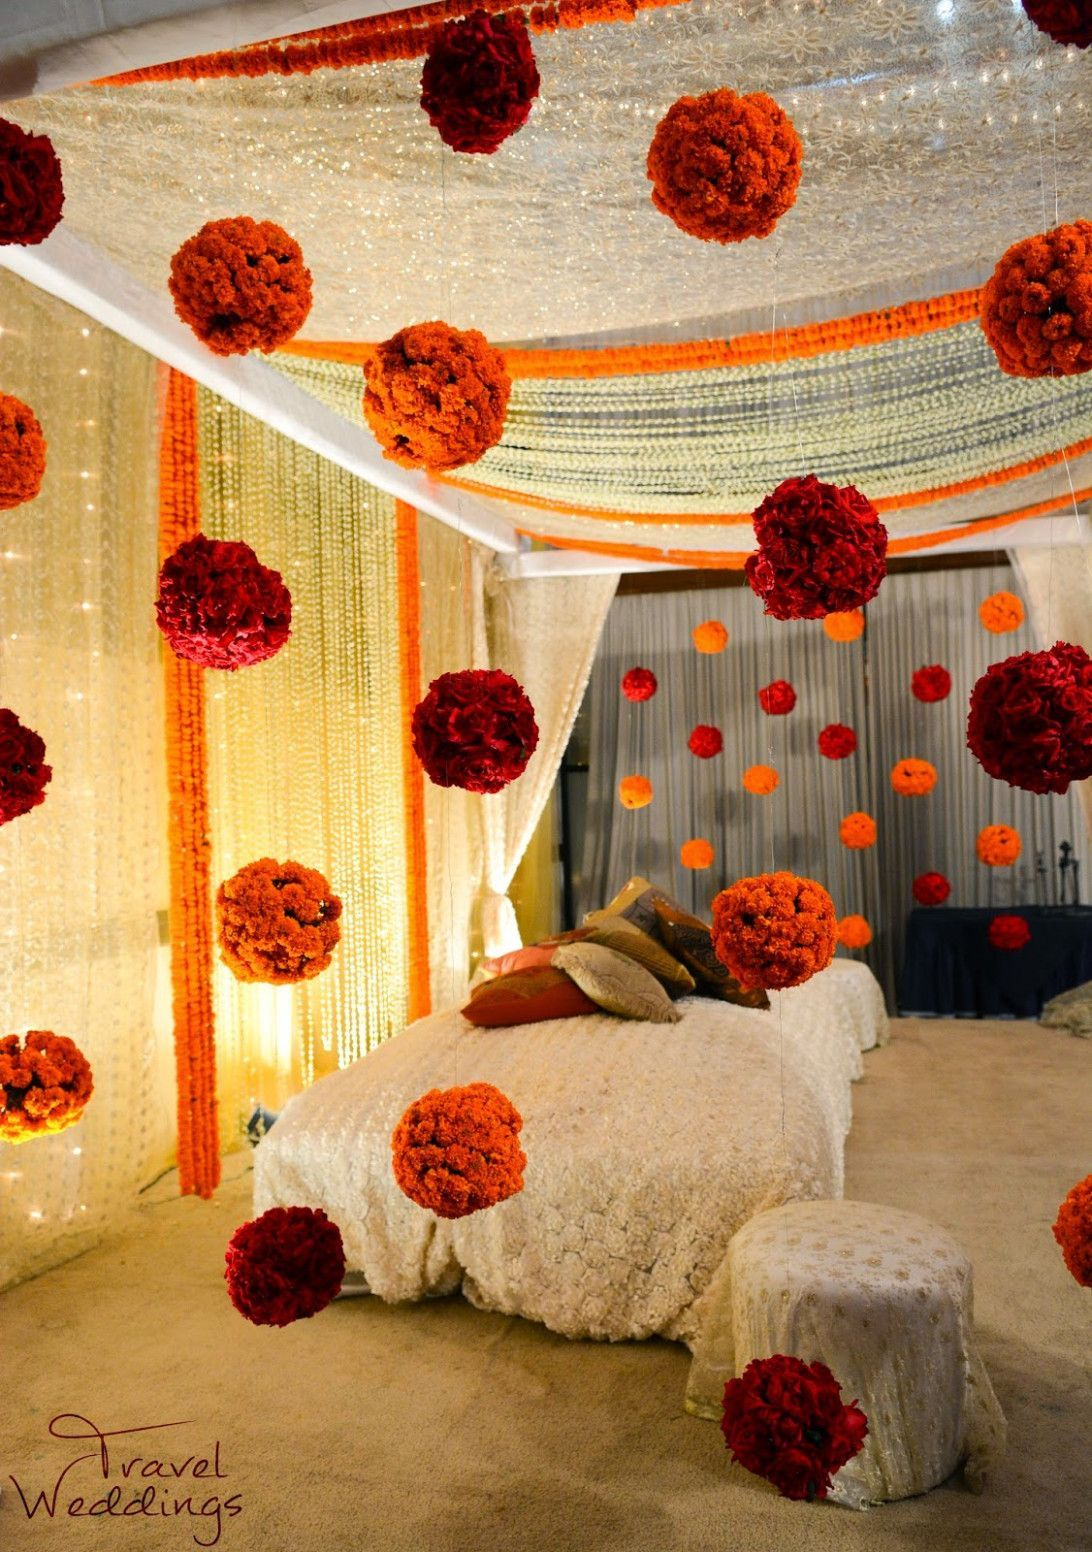 Steps in Planning A Wedding (With images) Indian wedding